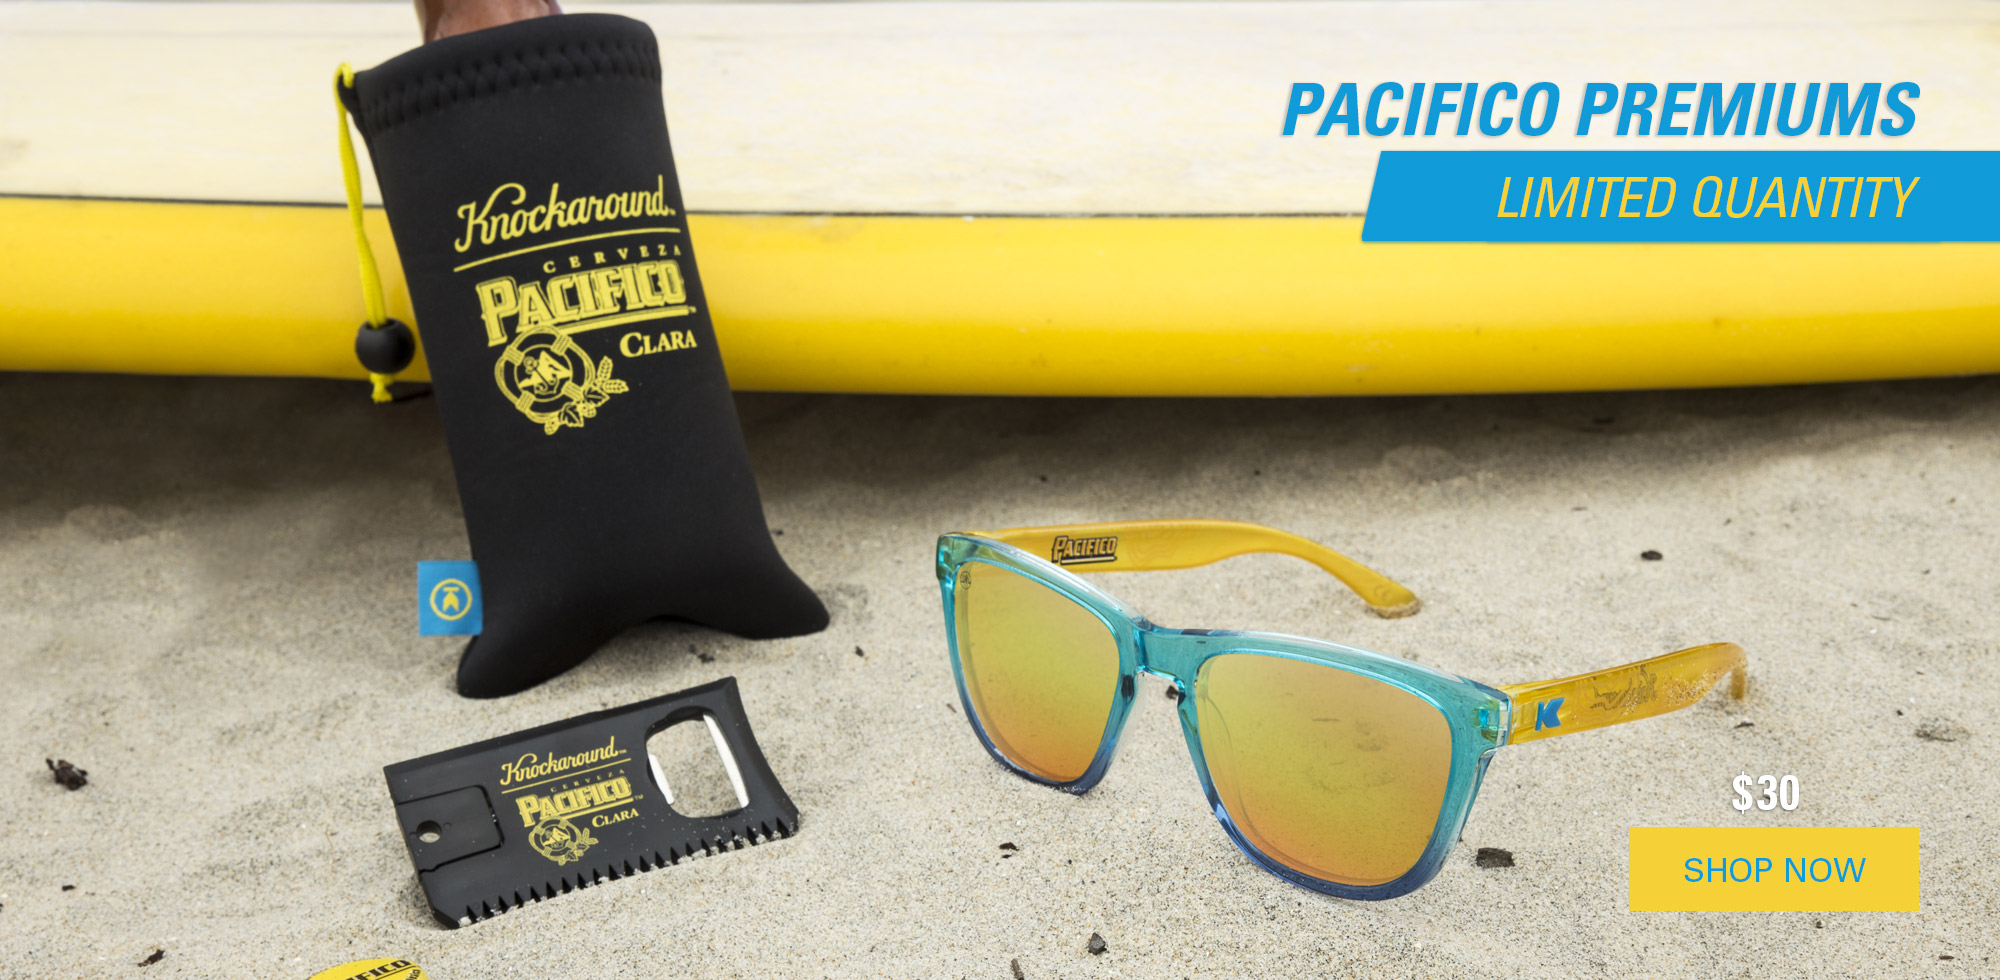 1e2b6af79cdf The Pacifico Premiums feature gradating Ocean Blue fronts (as clear as the  Pacific)